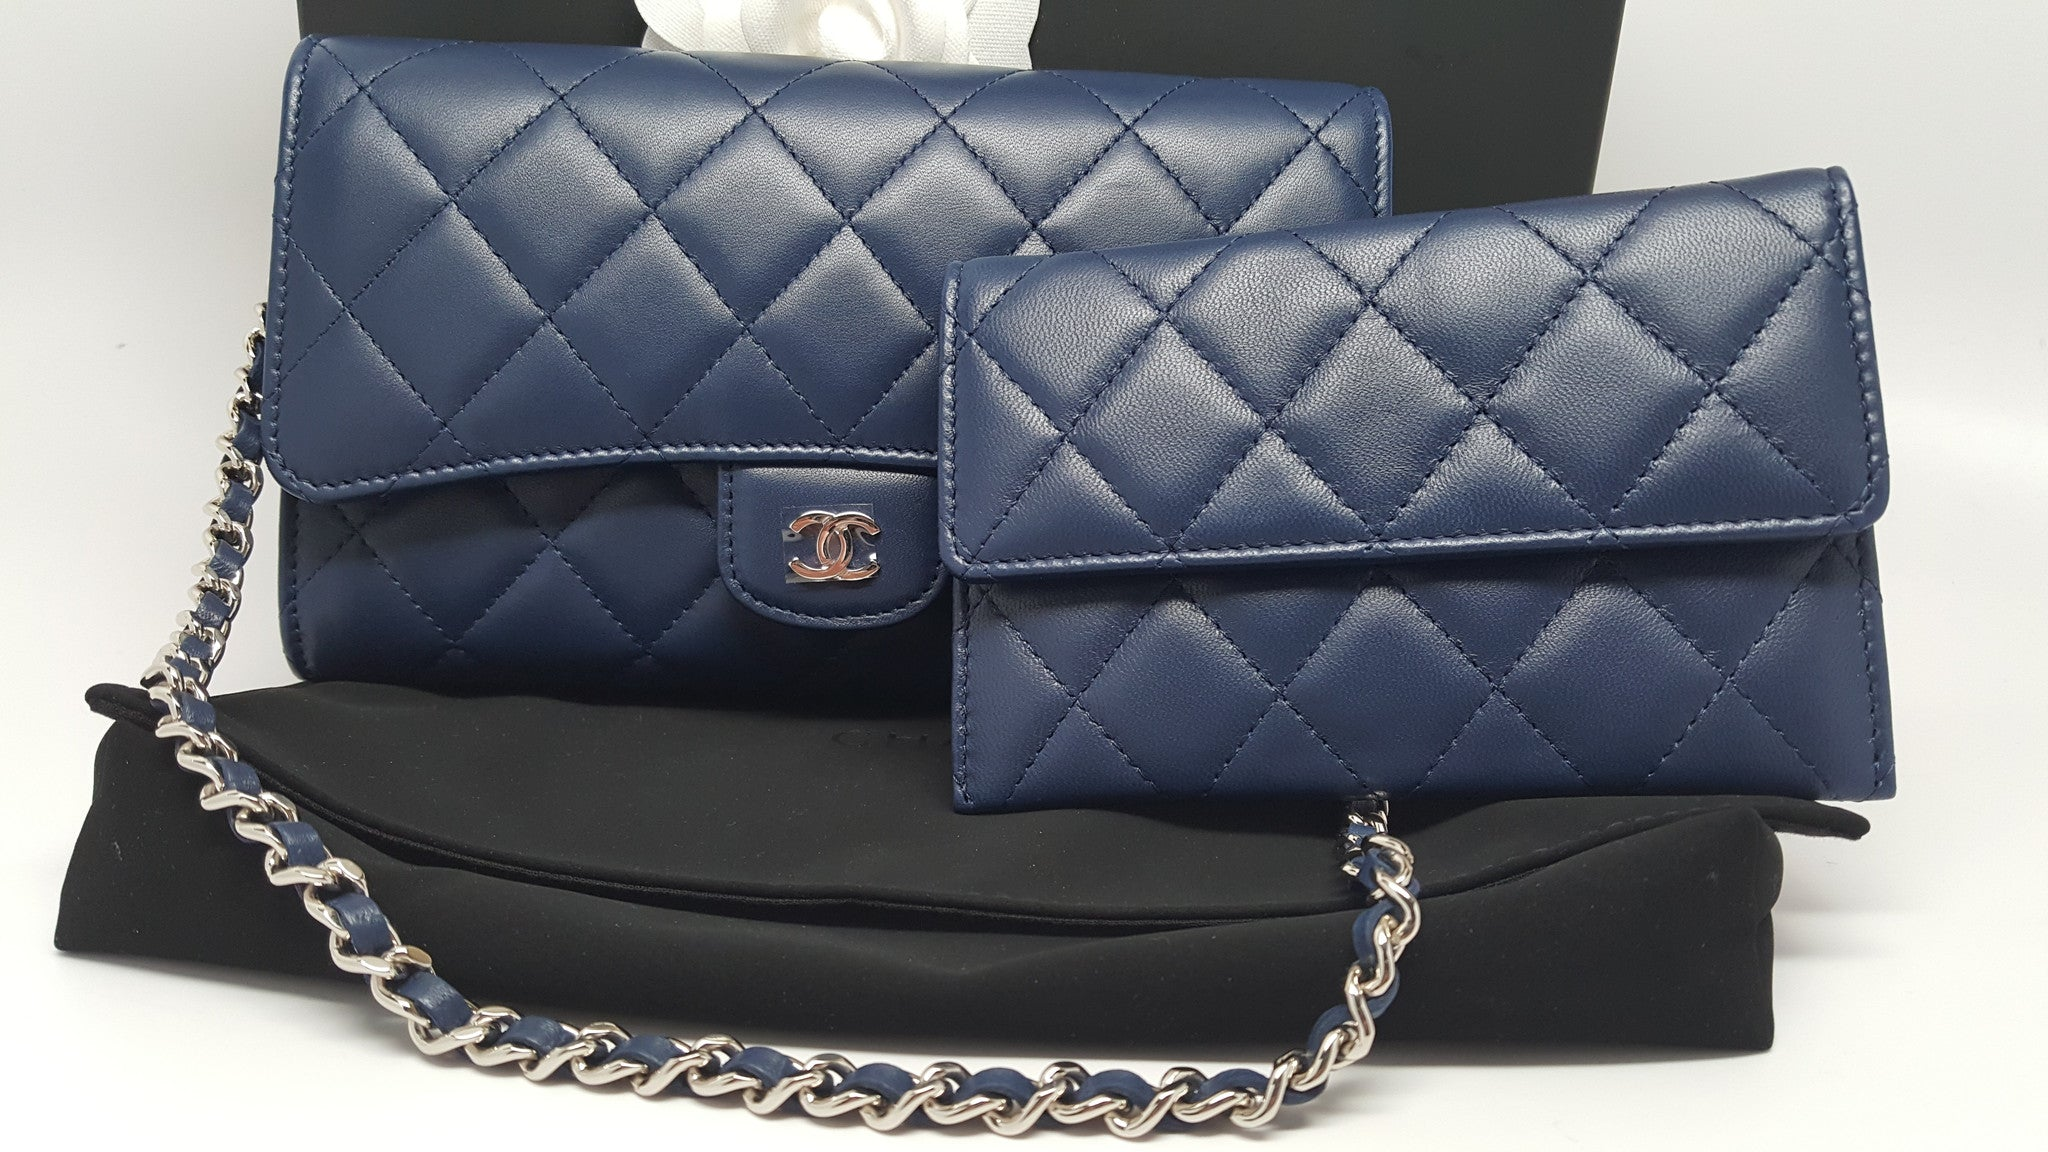 CHANEL QUILTED LAMBSKIN FLAP WALLET ON CHAIN IN DARK BLUE